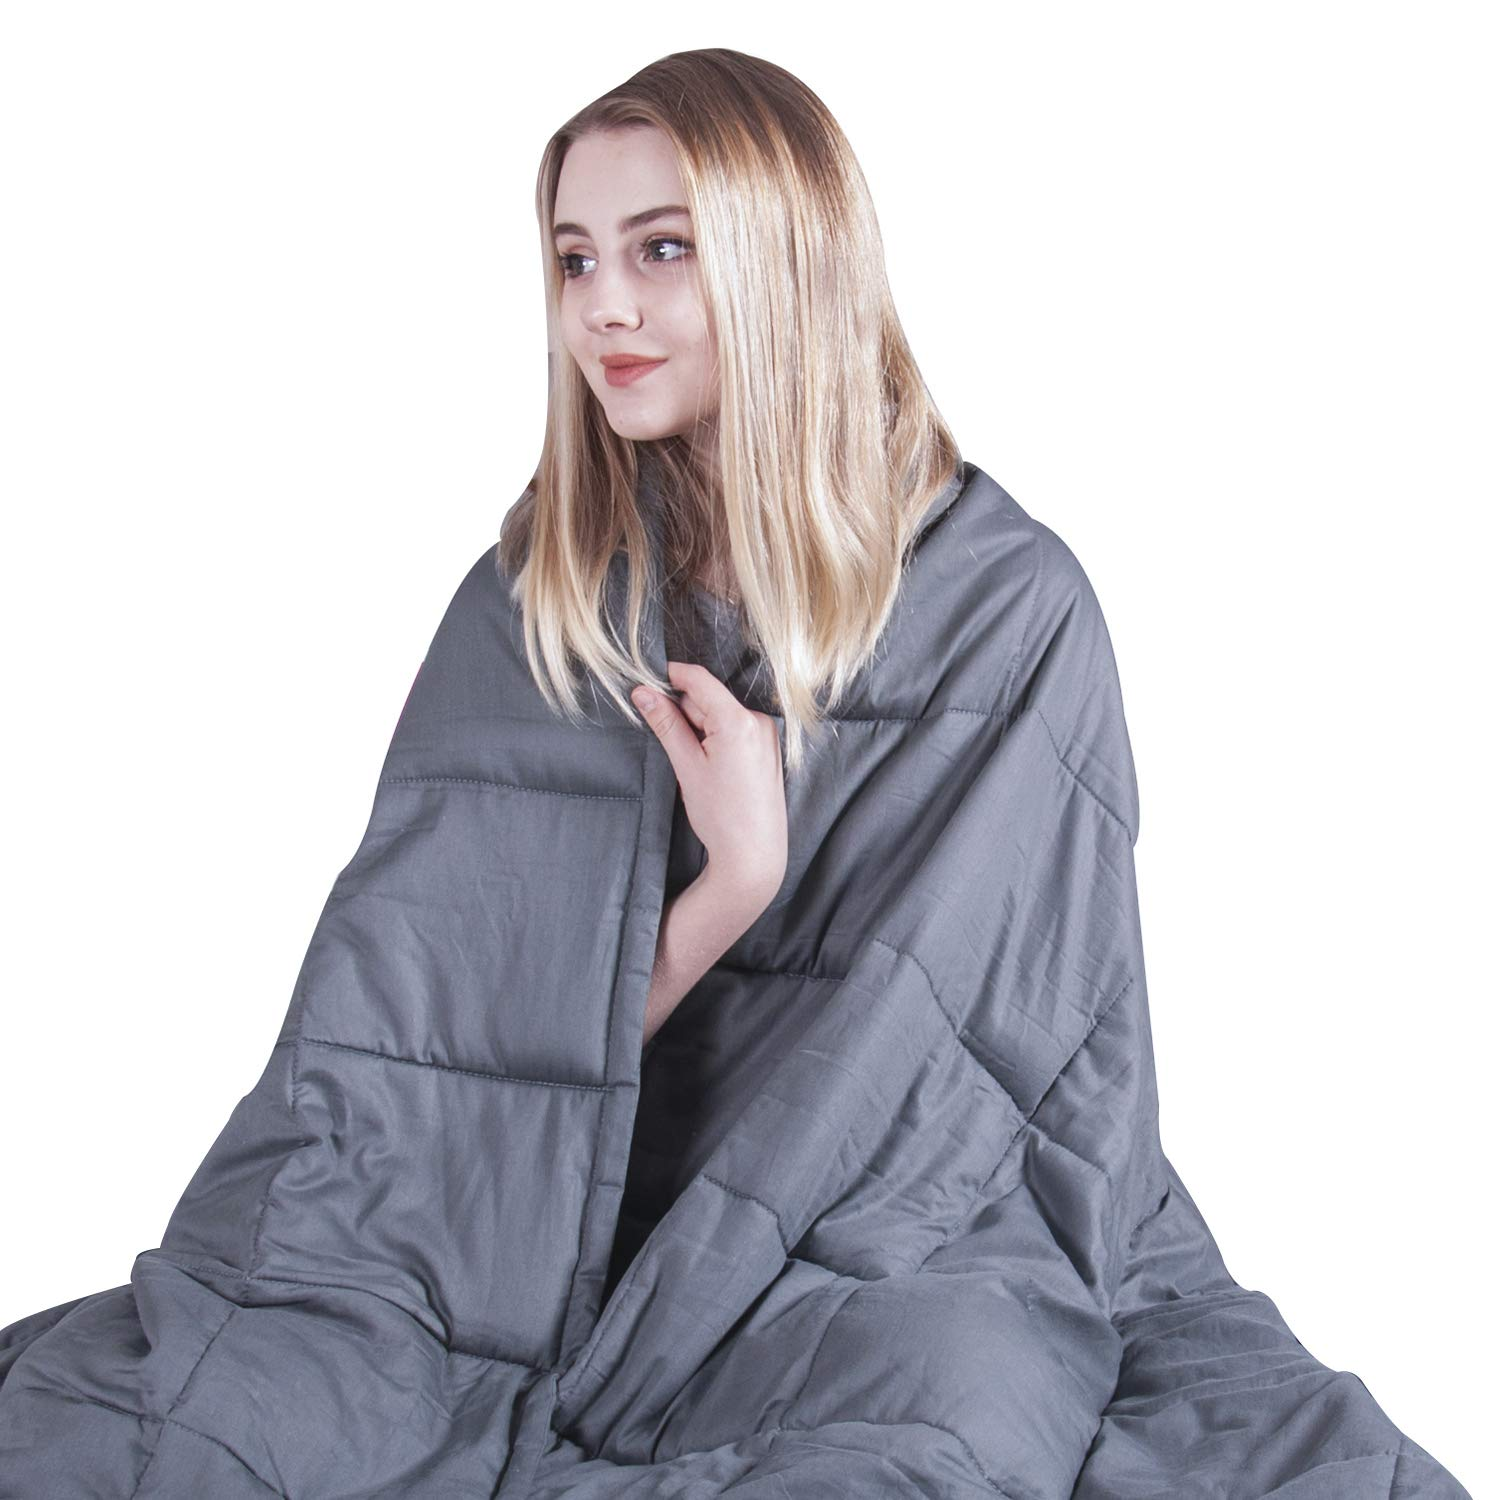 COMHO Weighted Blanket Adults Cooling